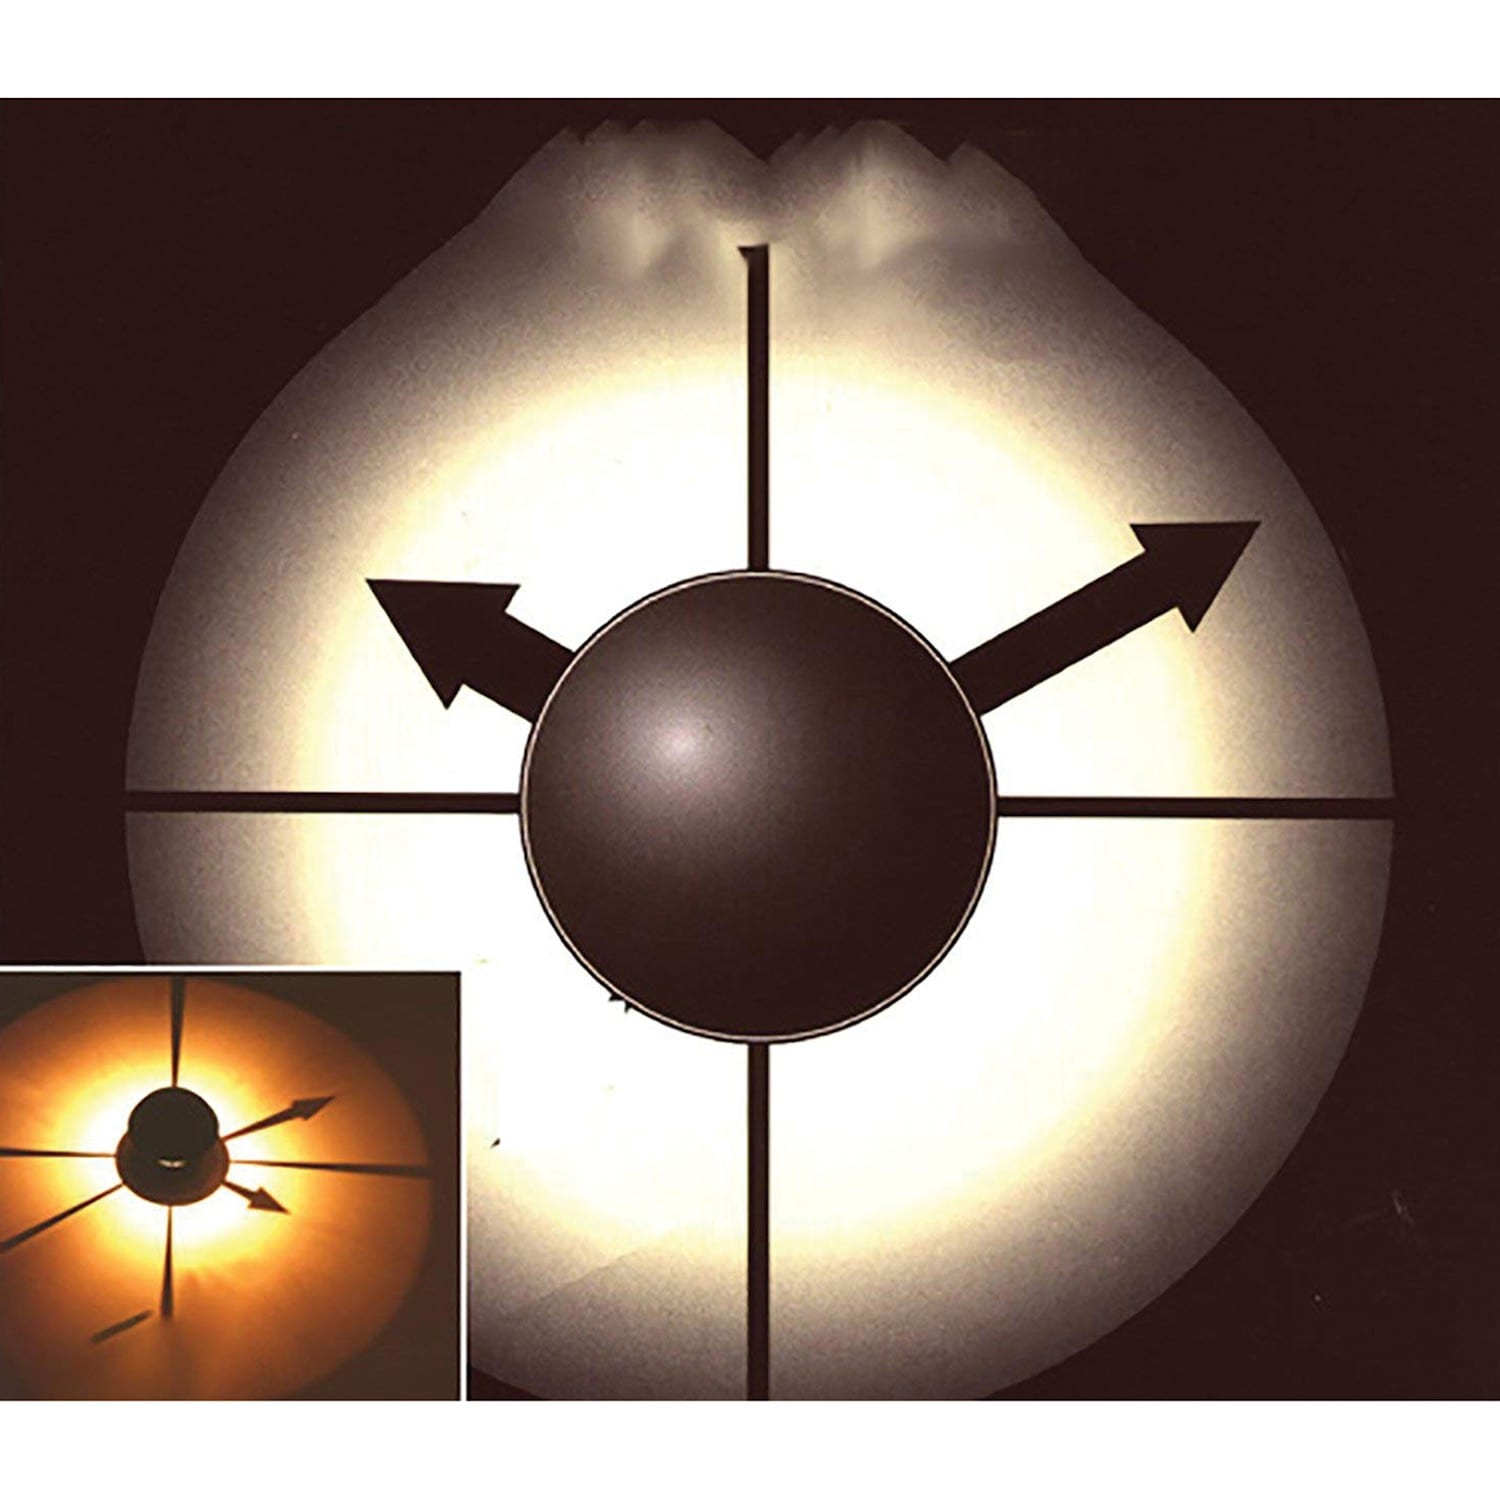 Us Nordic Import Amp Export Wall Shadow Projection Clock Ebay